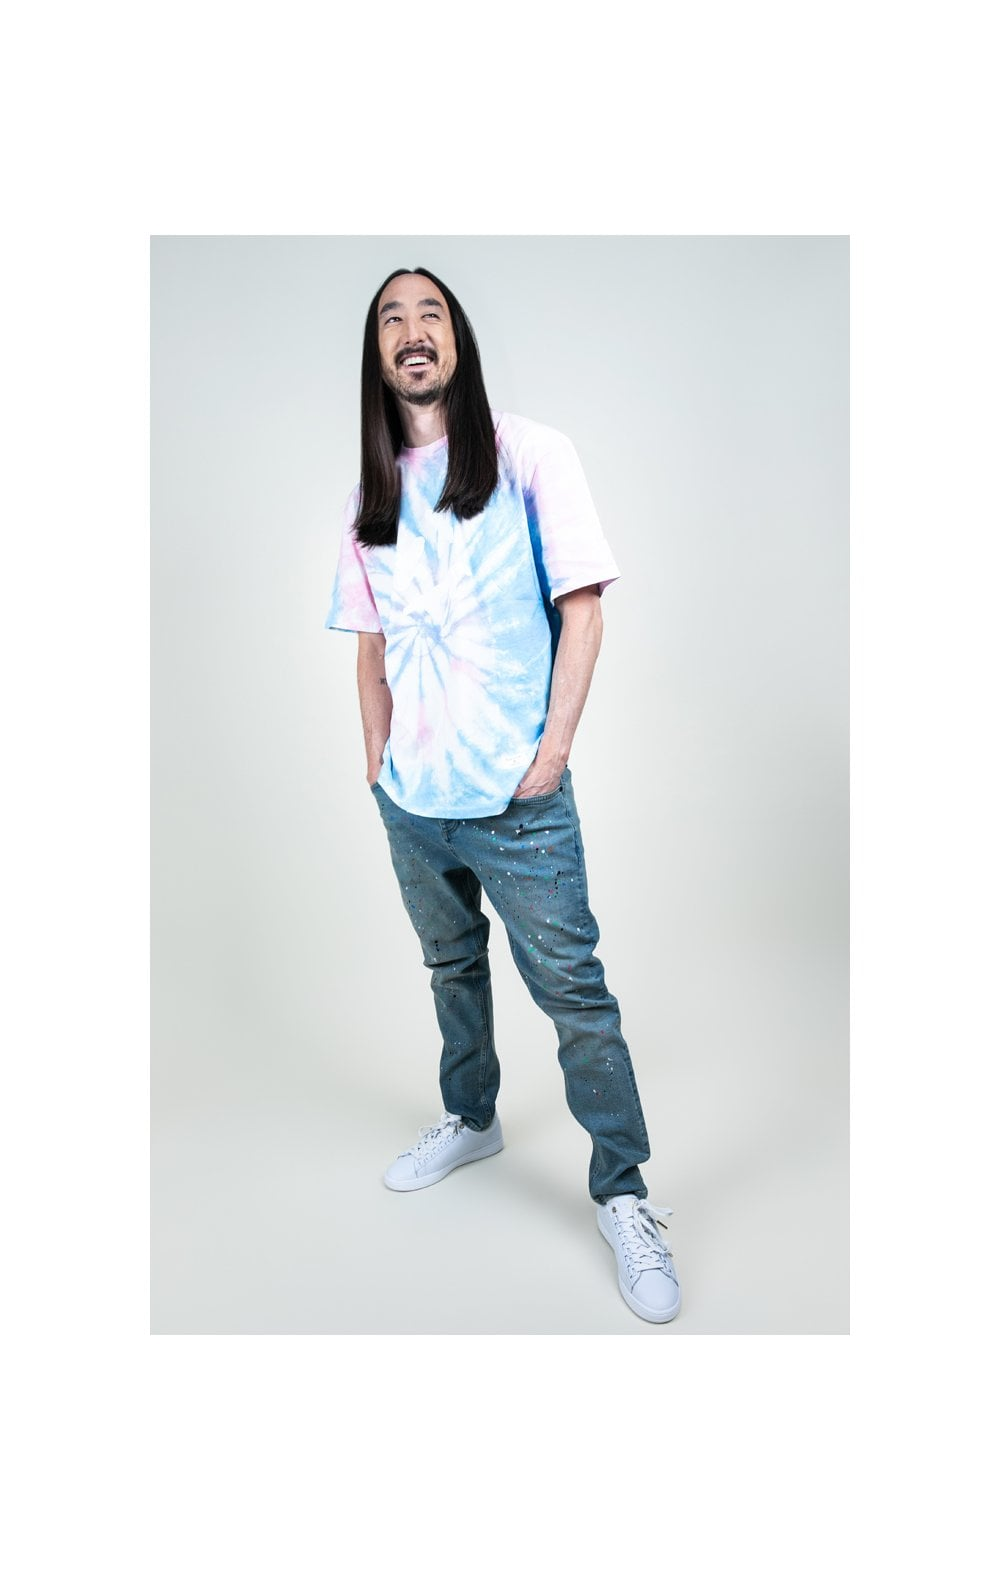 Load image into Gallery viewer, SikSilk X Steve Aoki S/S Oversize Essential Tee – Baby Pink & Blue Tie Dye (6)